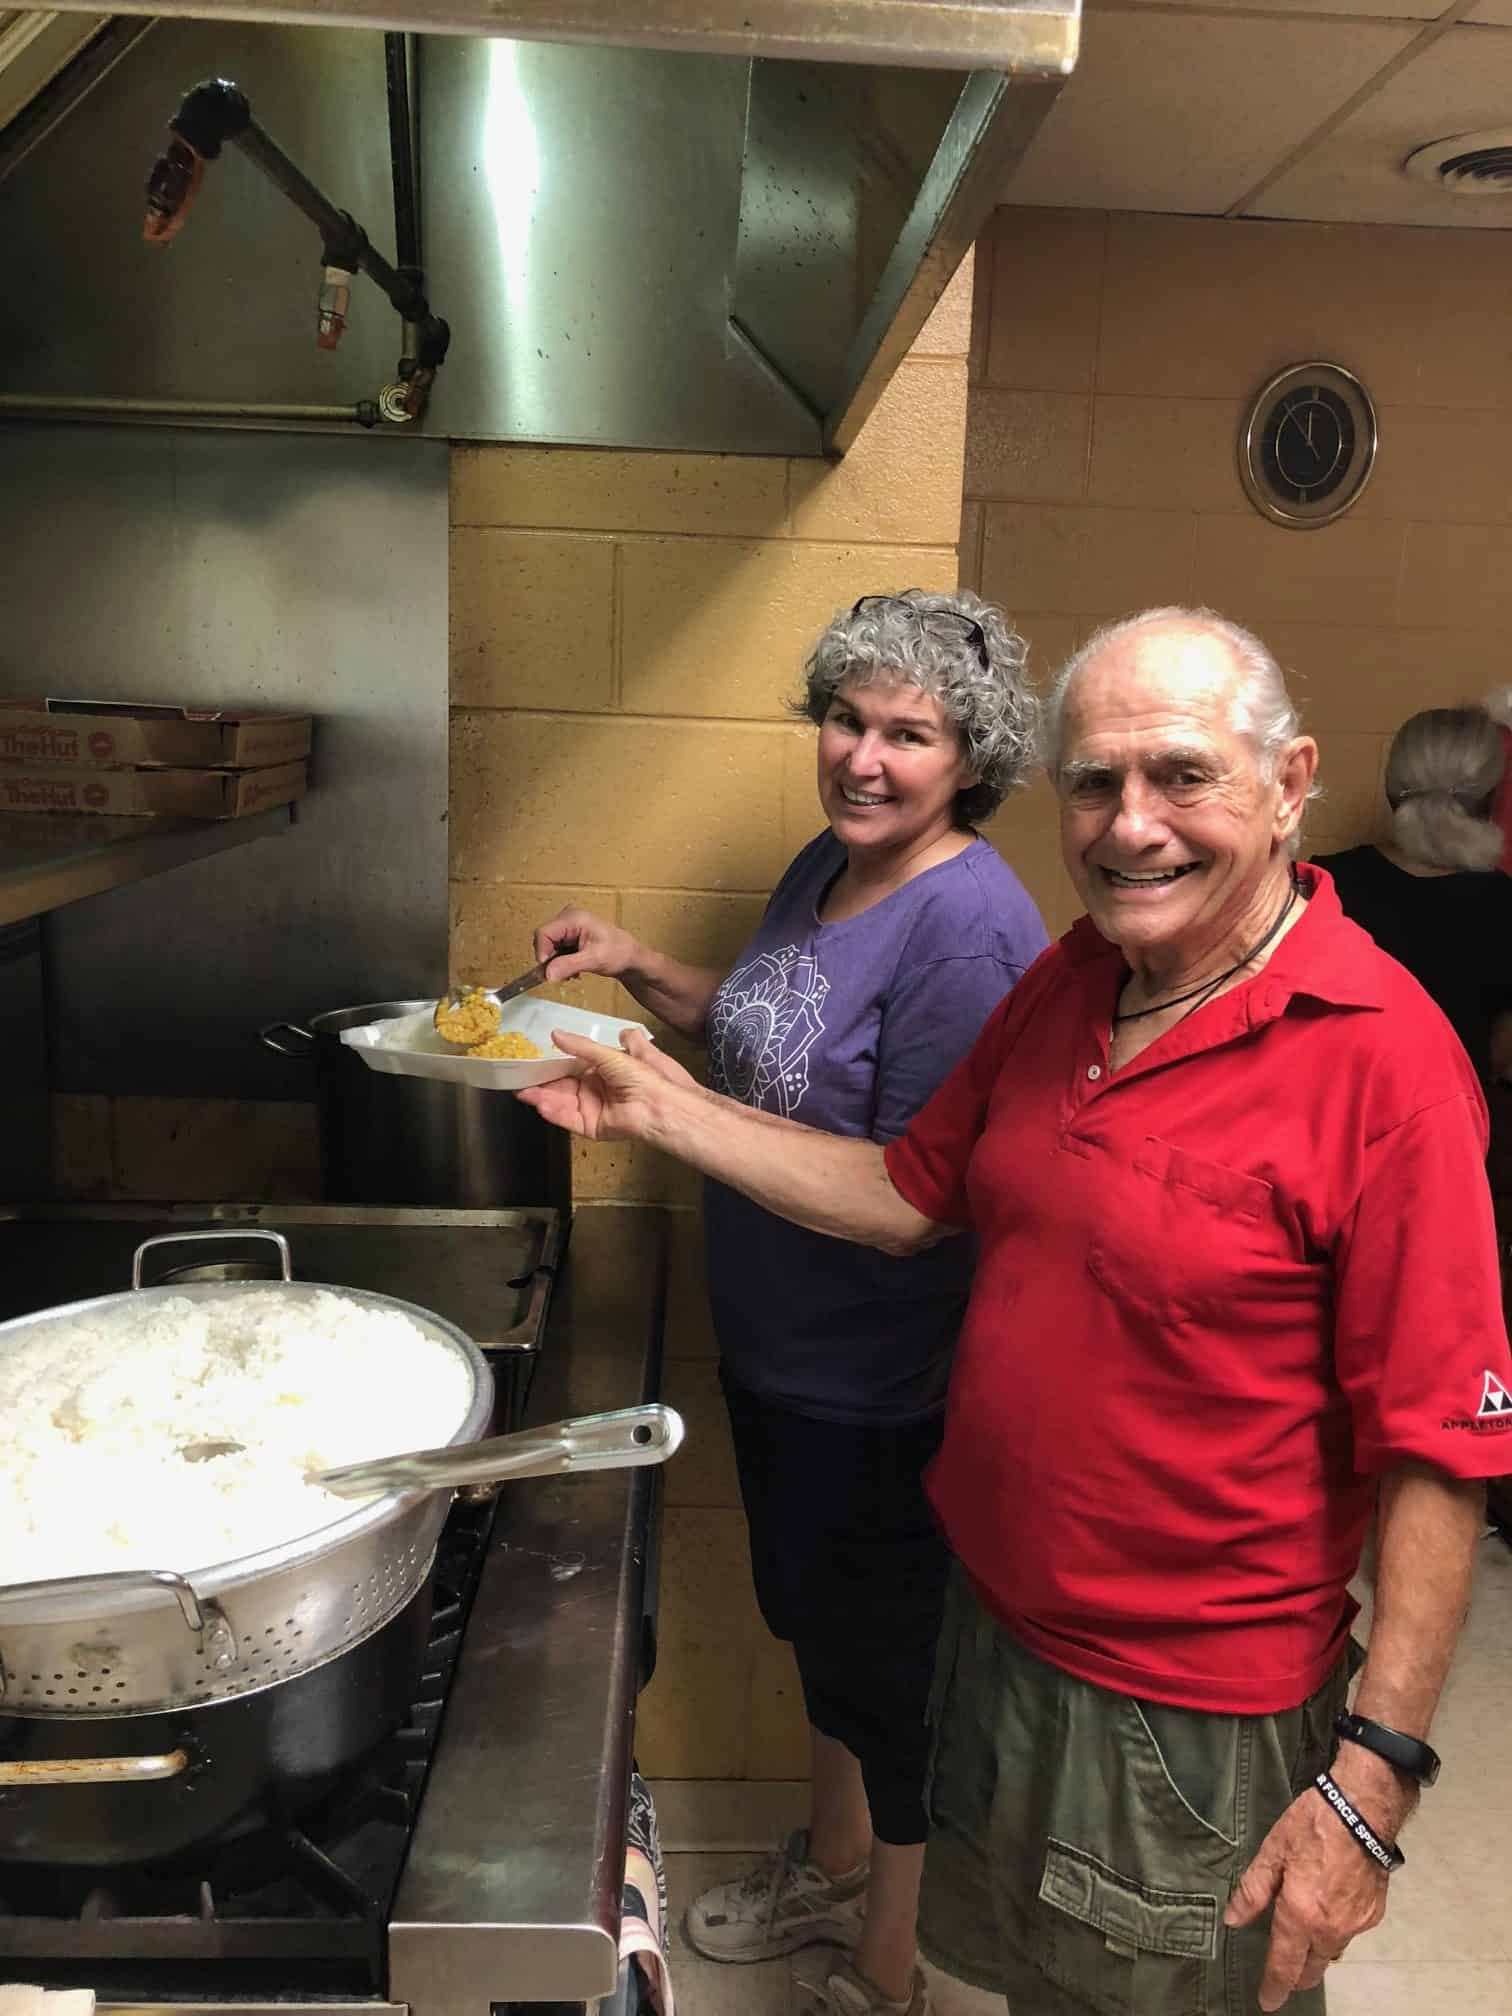 Kathy Hall and Don Horne faithfully serve at the Salvation Army Soup Kitchen on Tuesdays